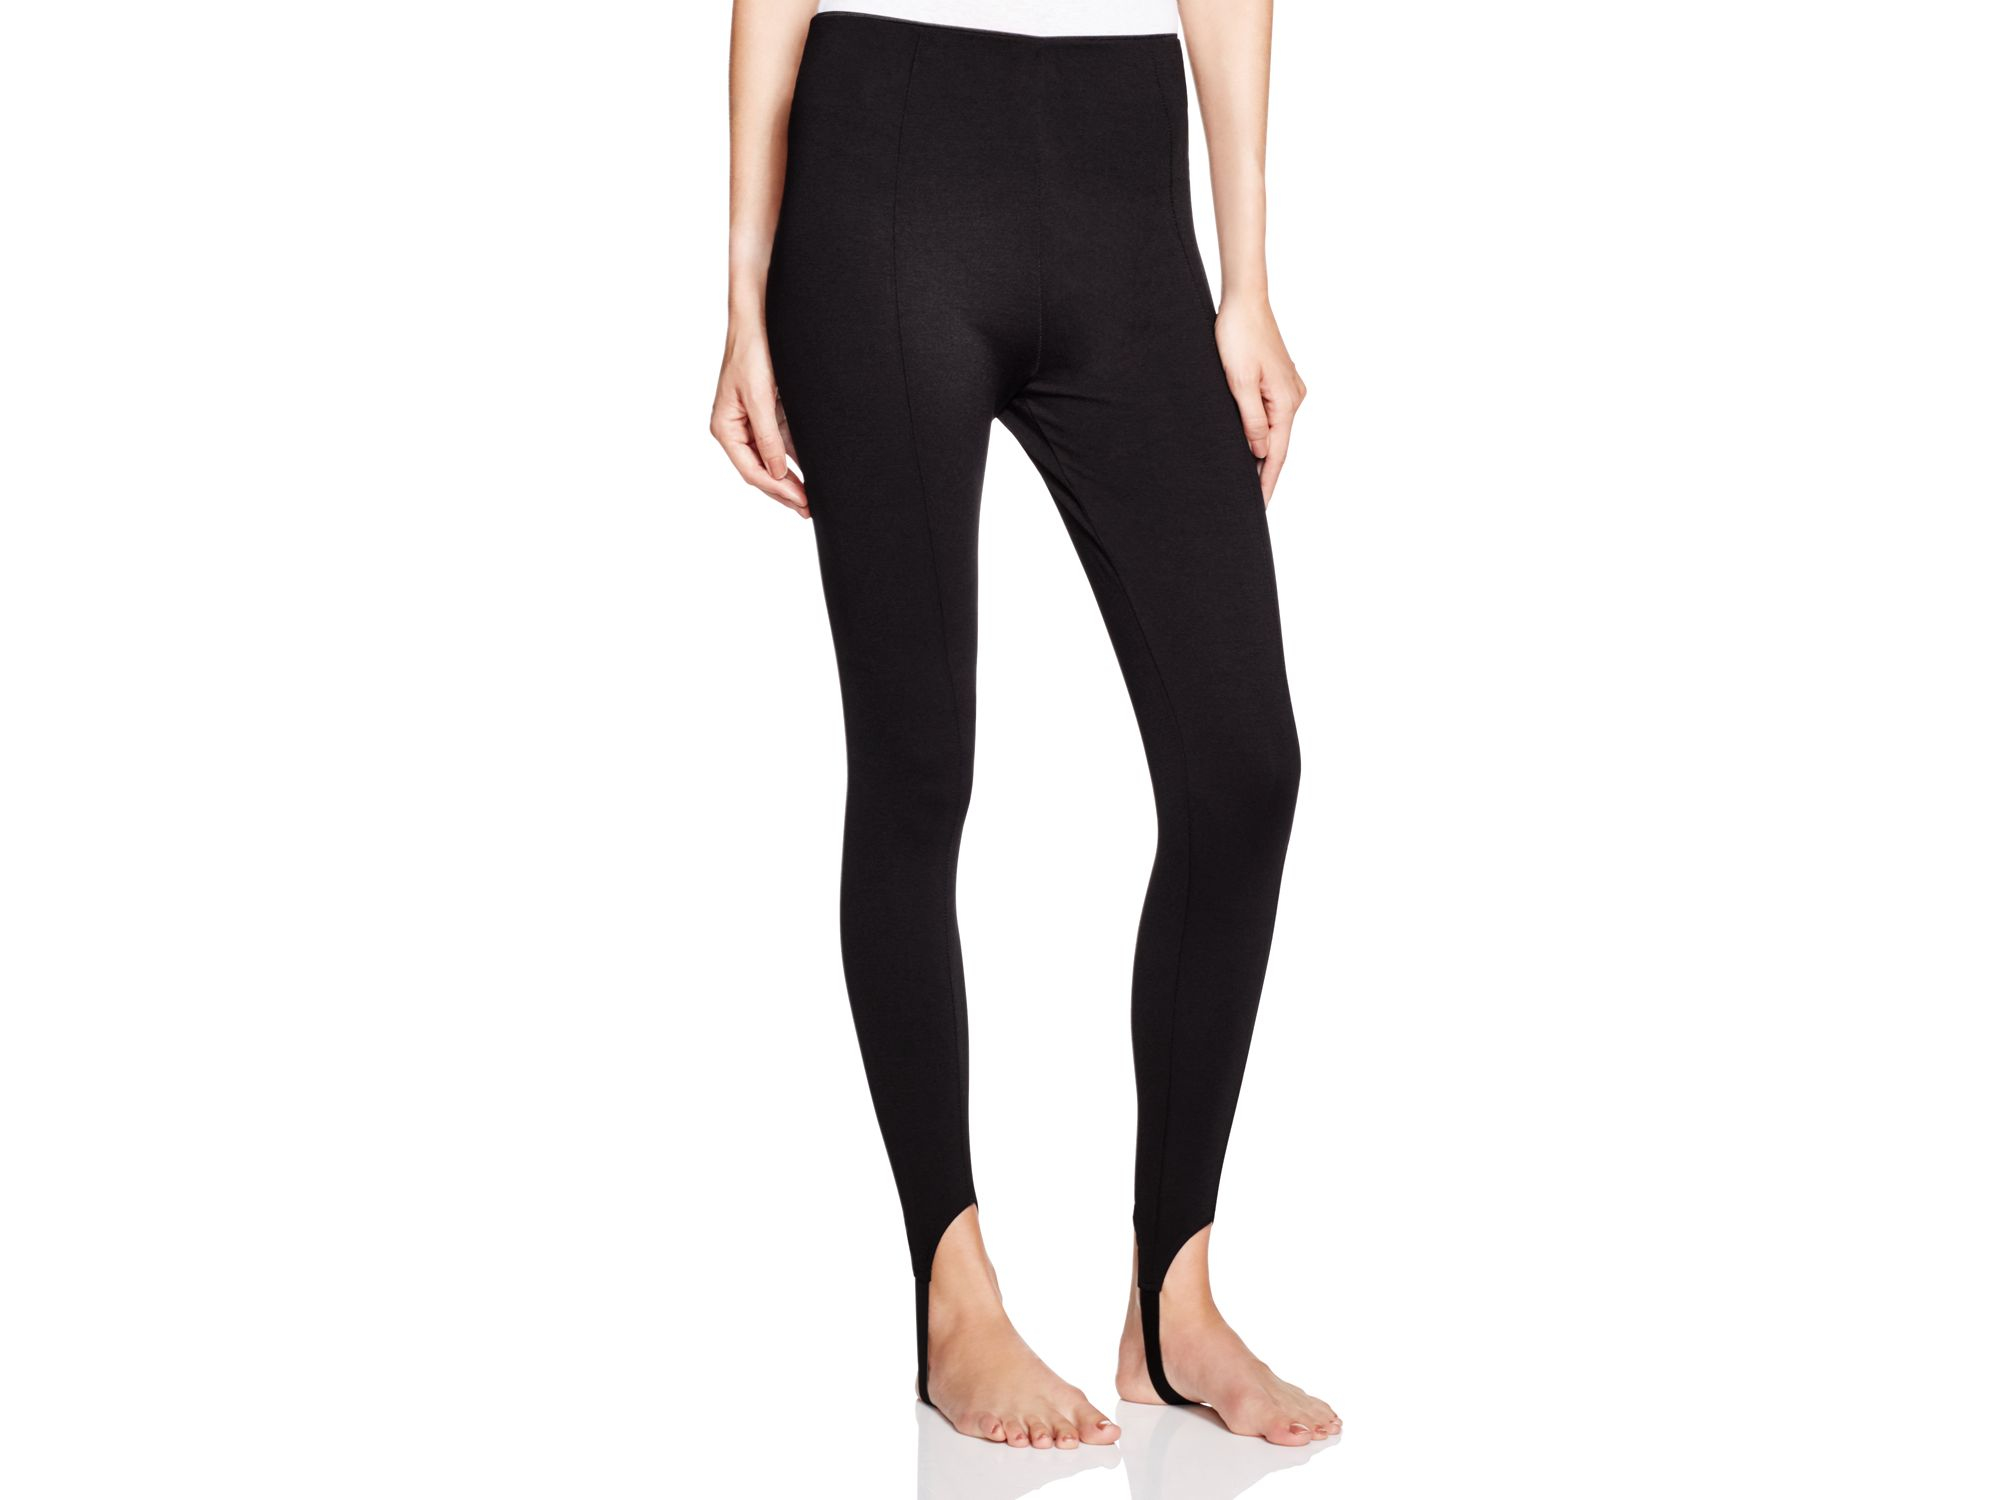 Nike Women's Nike Burnout Stirrup Leggings Black Medium. Sold by Best Global Trader. $ Oakley Oakley Women Luxe Stirrup Tights Golf Leggings NEW. Sold by Golfio Inc. shopnew-5uel8qry.cf Women Stirrup Yoga Pants White Mesh Fitness Leggings High Elastic Sports Leggings High Waist Contrast Running Tights. Sold by 2 Sellers + 1.